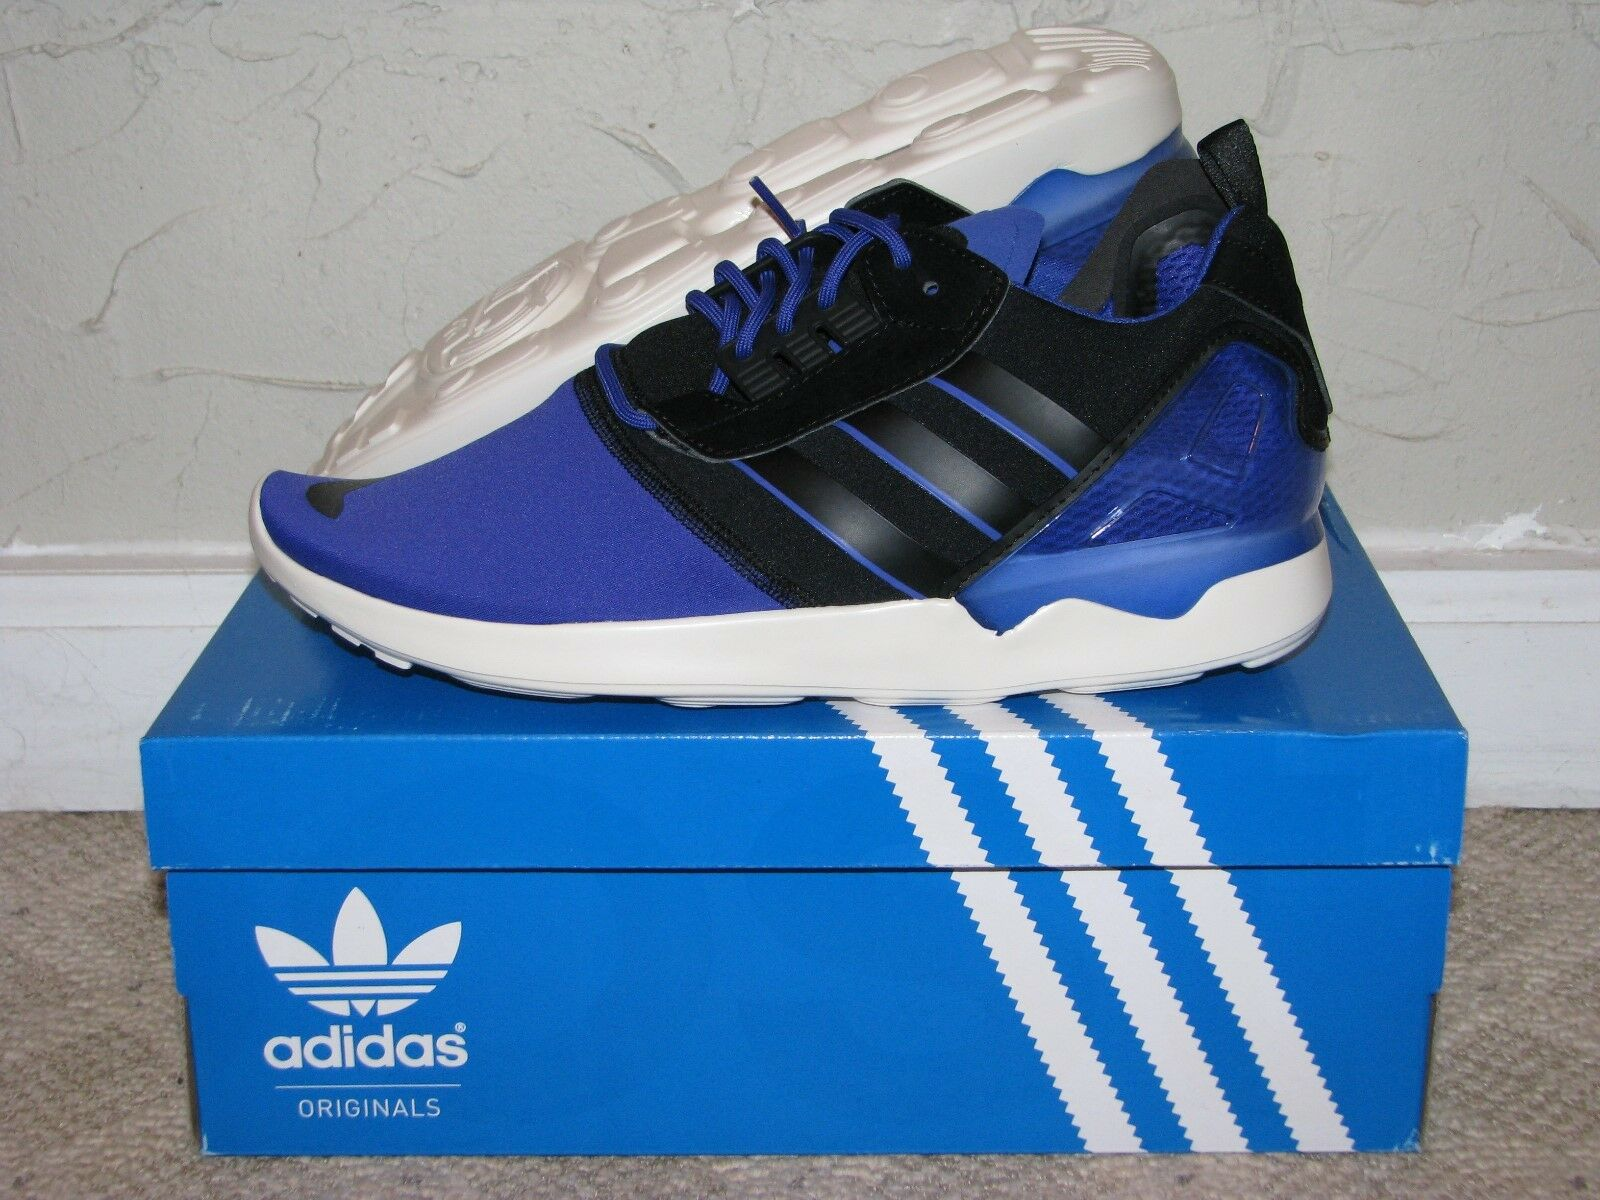 adidas ZX 8000 Boost Purple/Black/White Mens Size 9.5 DS NEW! B26370